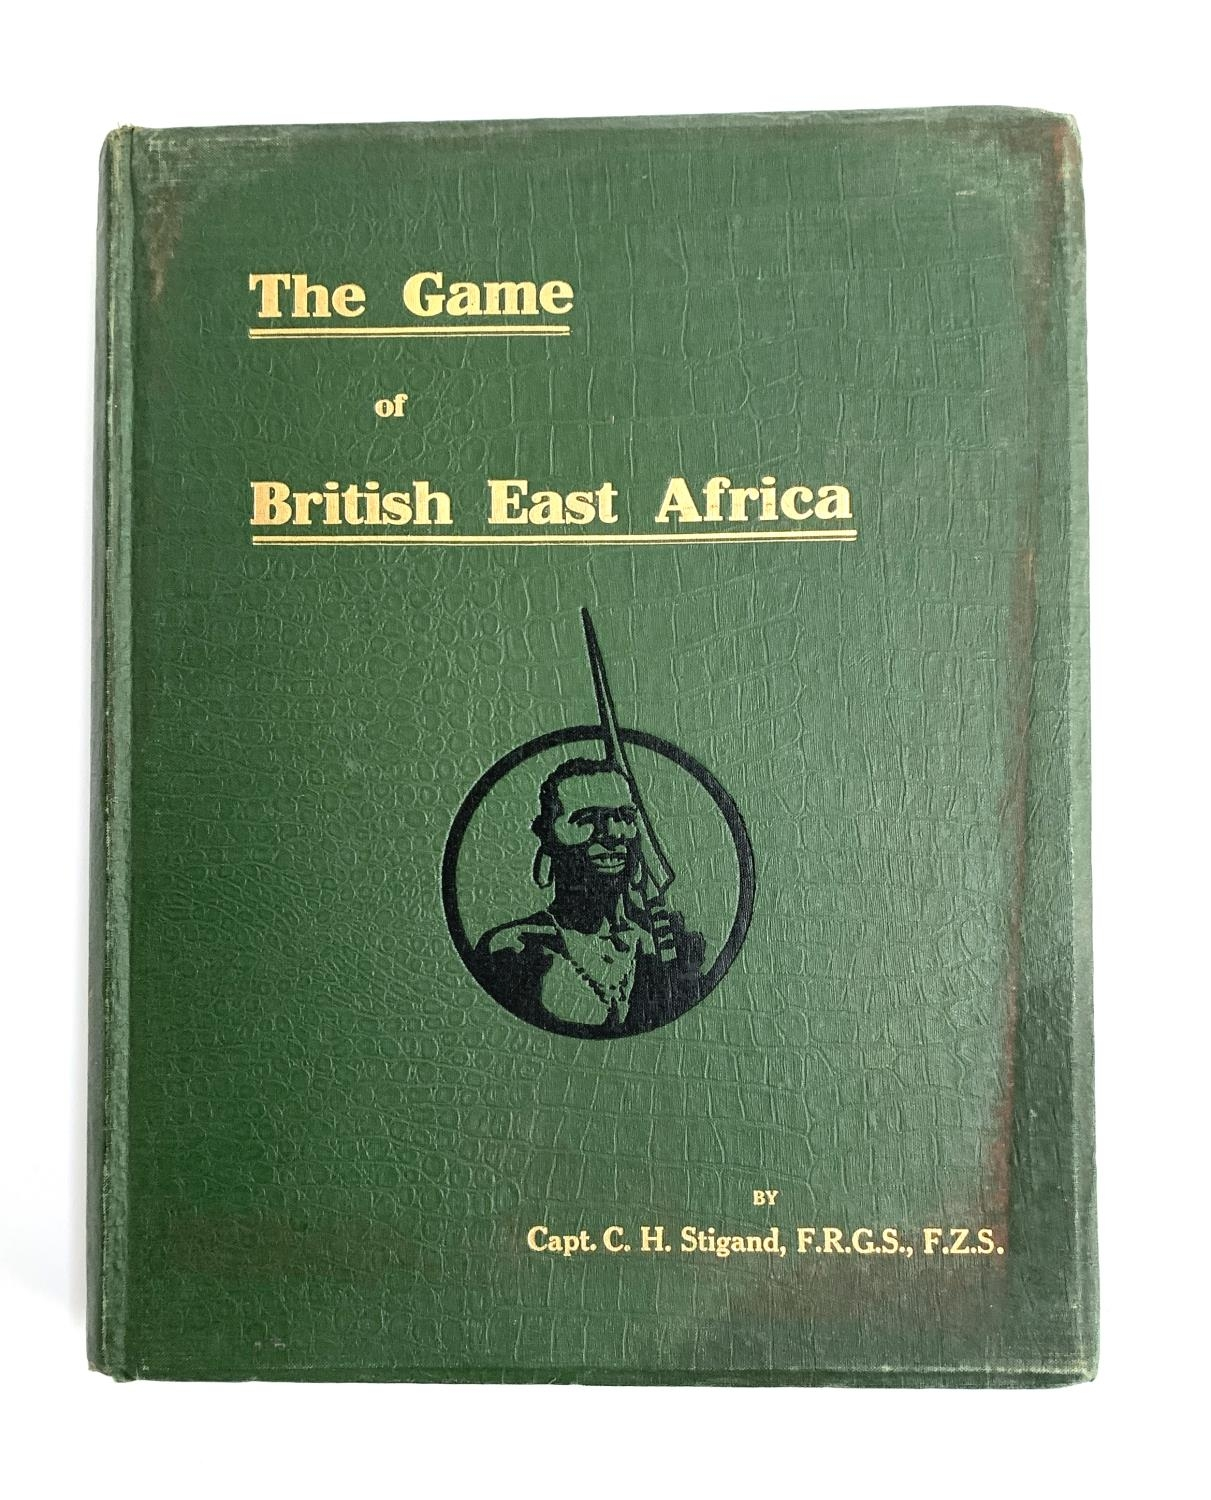 Captain C.H. Stigand, 'The Game of British East Africa', second edition, London: Horace Cox, 1913